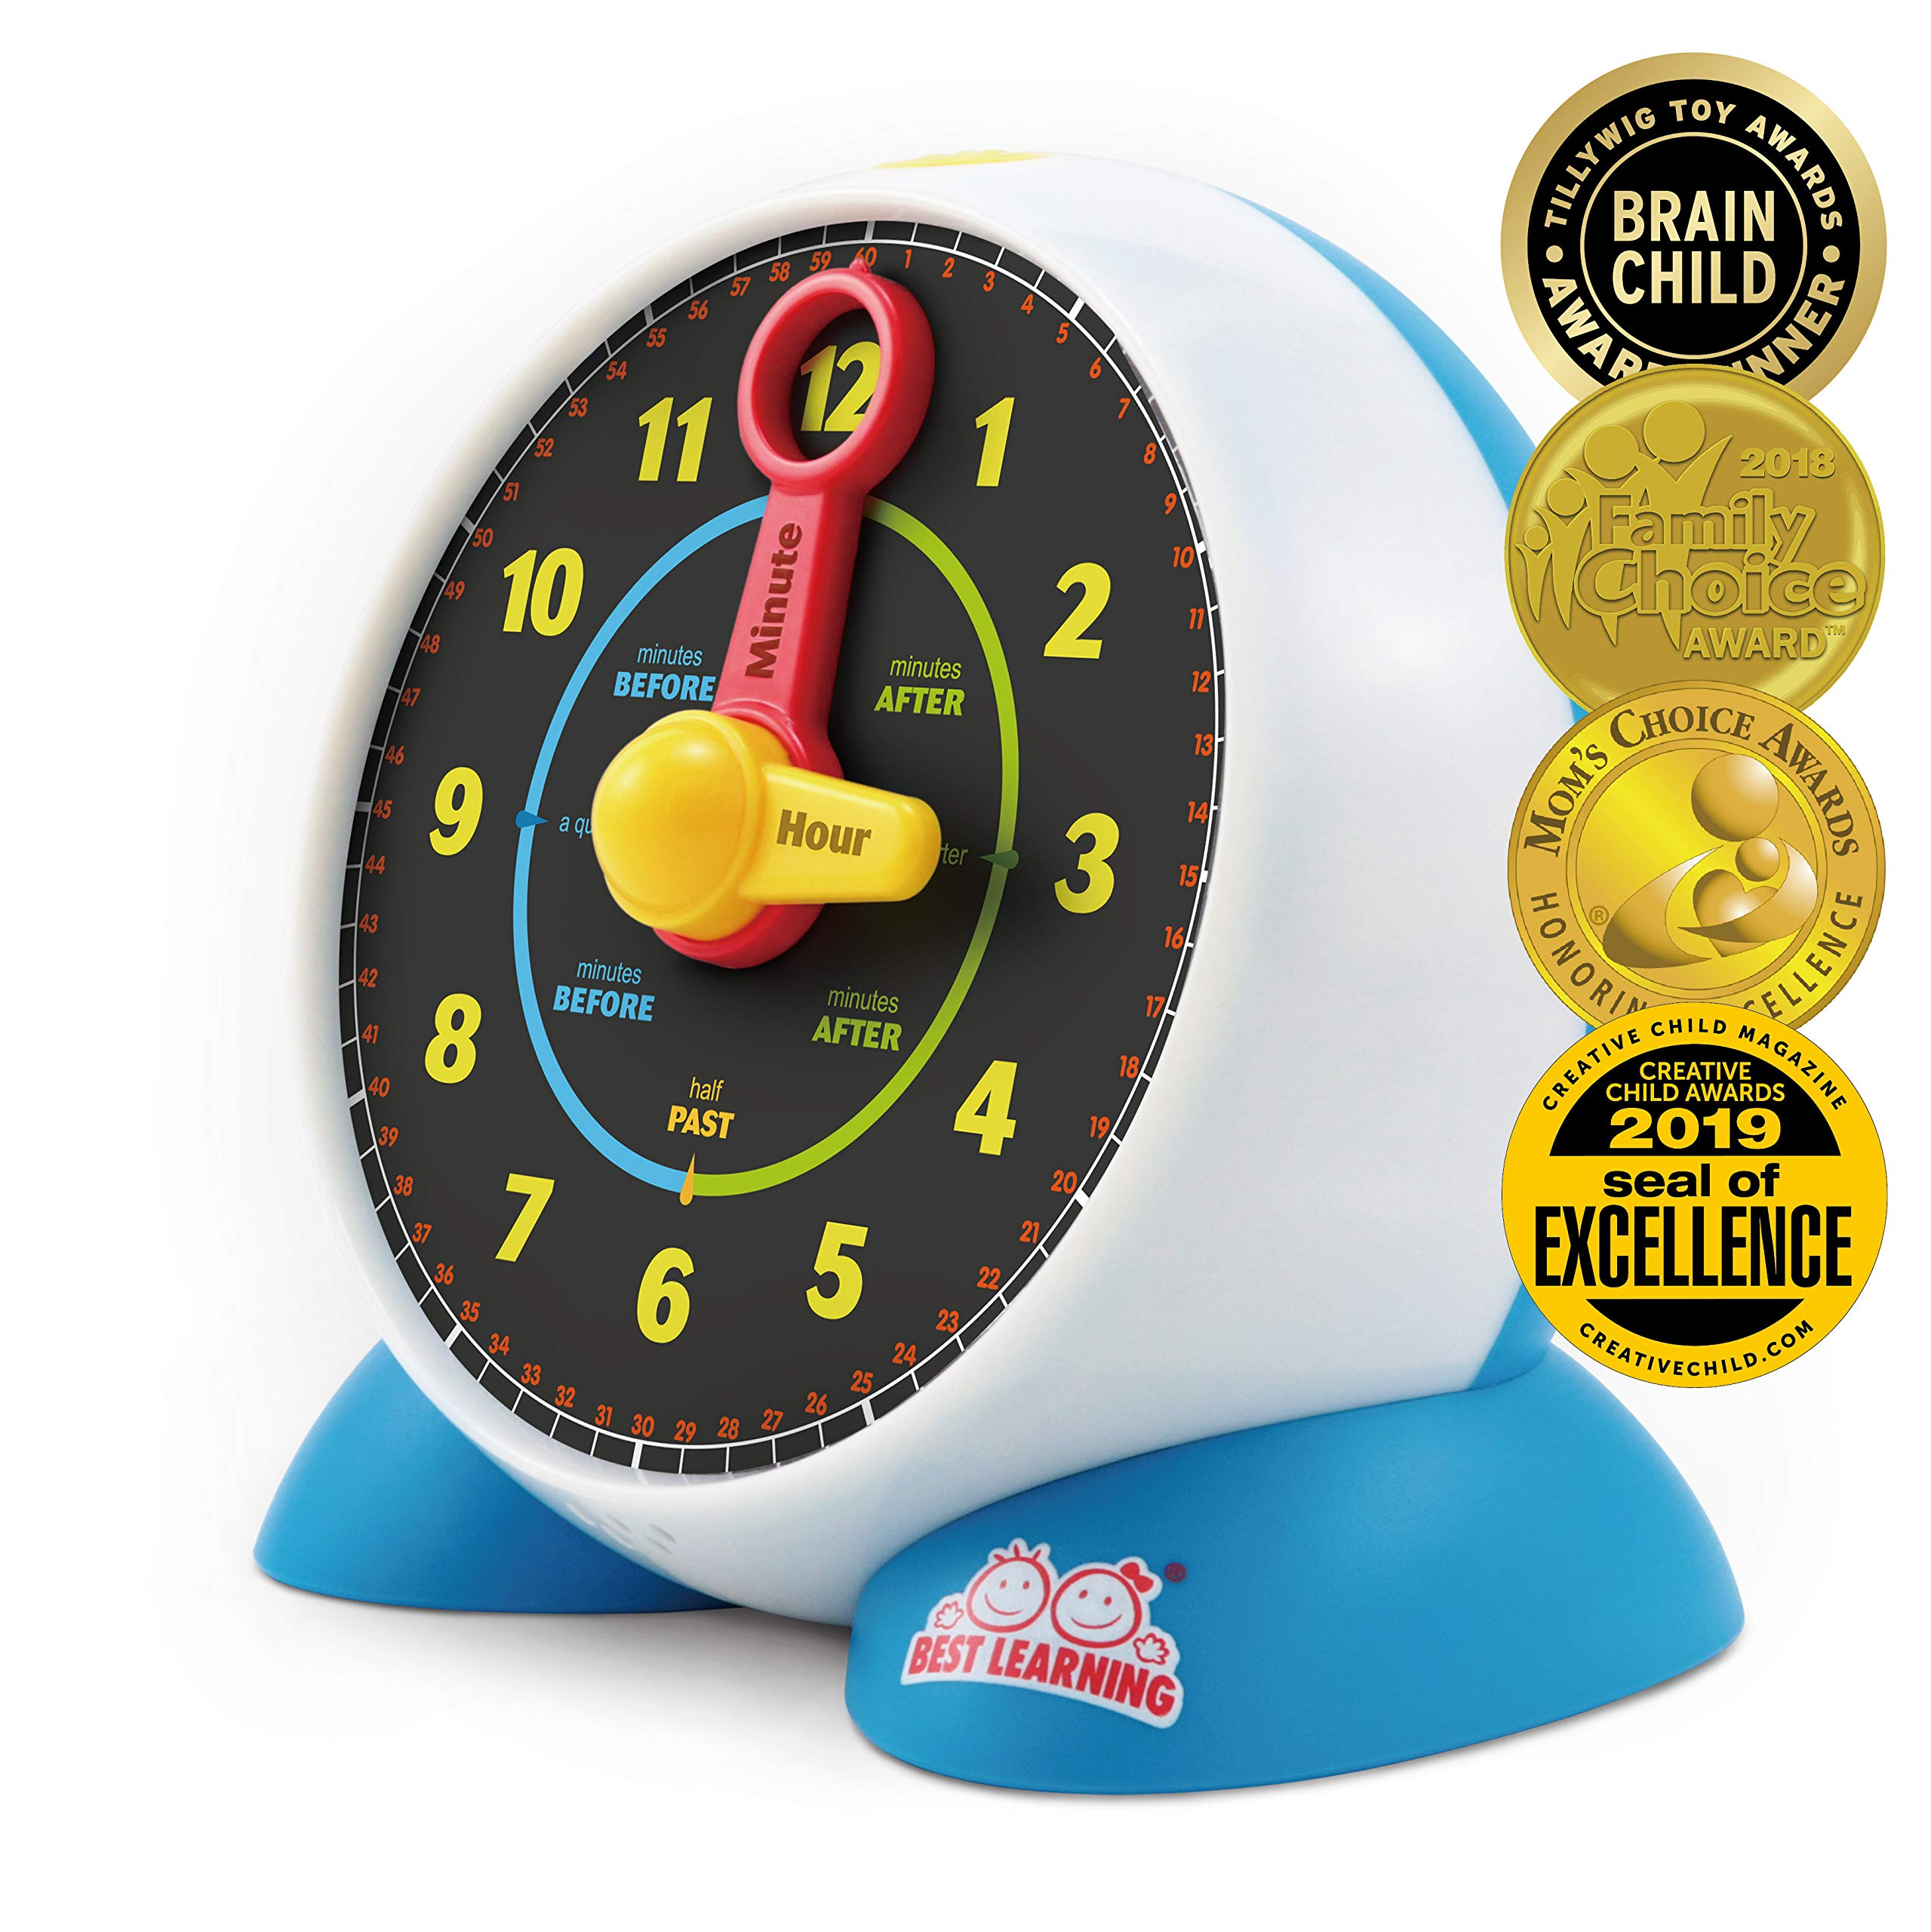 BEST LEARNING Learning Clock - Educational Talking Learn to Tell Time Light-Up Toy with Quiz and Sleep Mode Lullaby Music for Toddlers Kids by BEST LEARNING